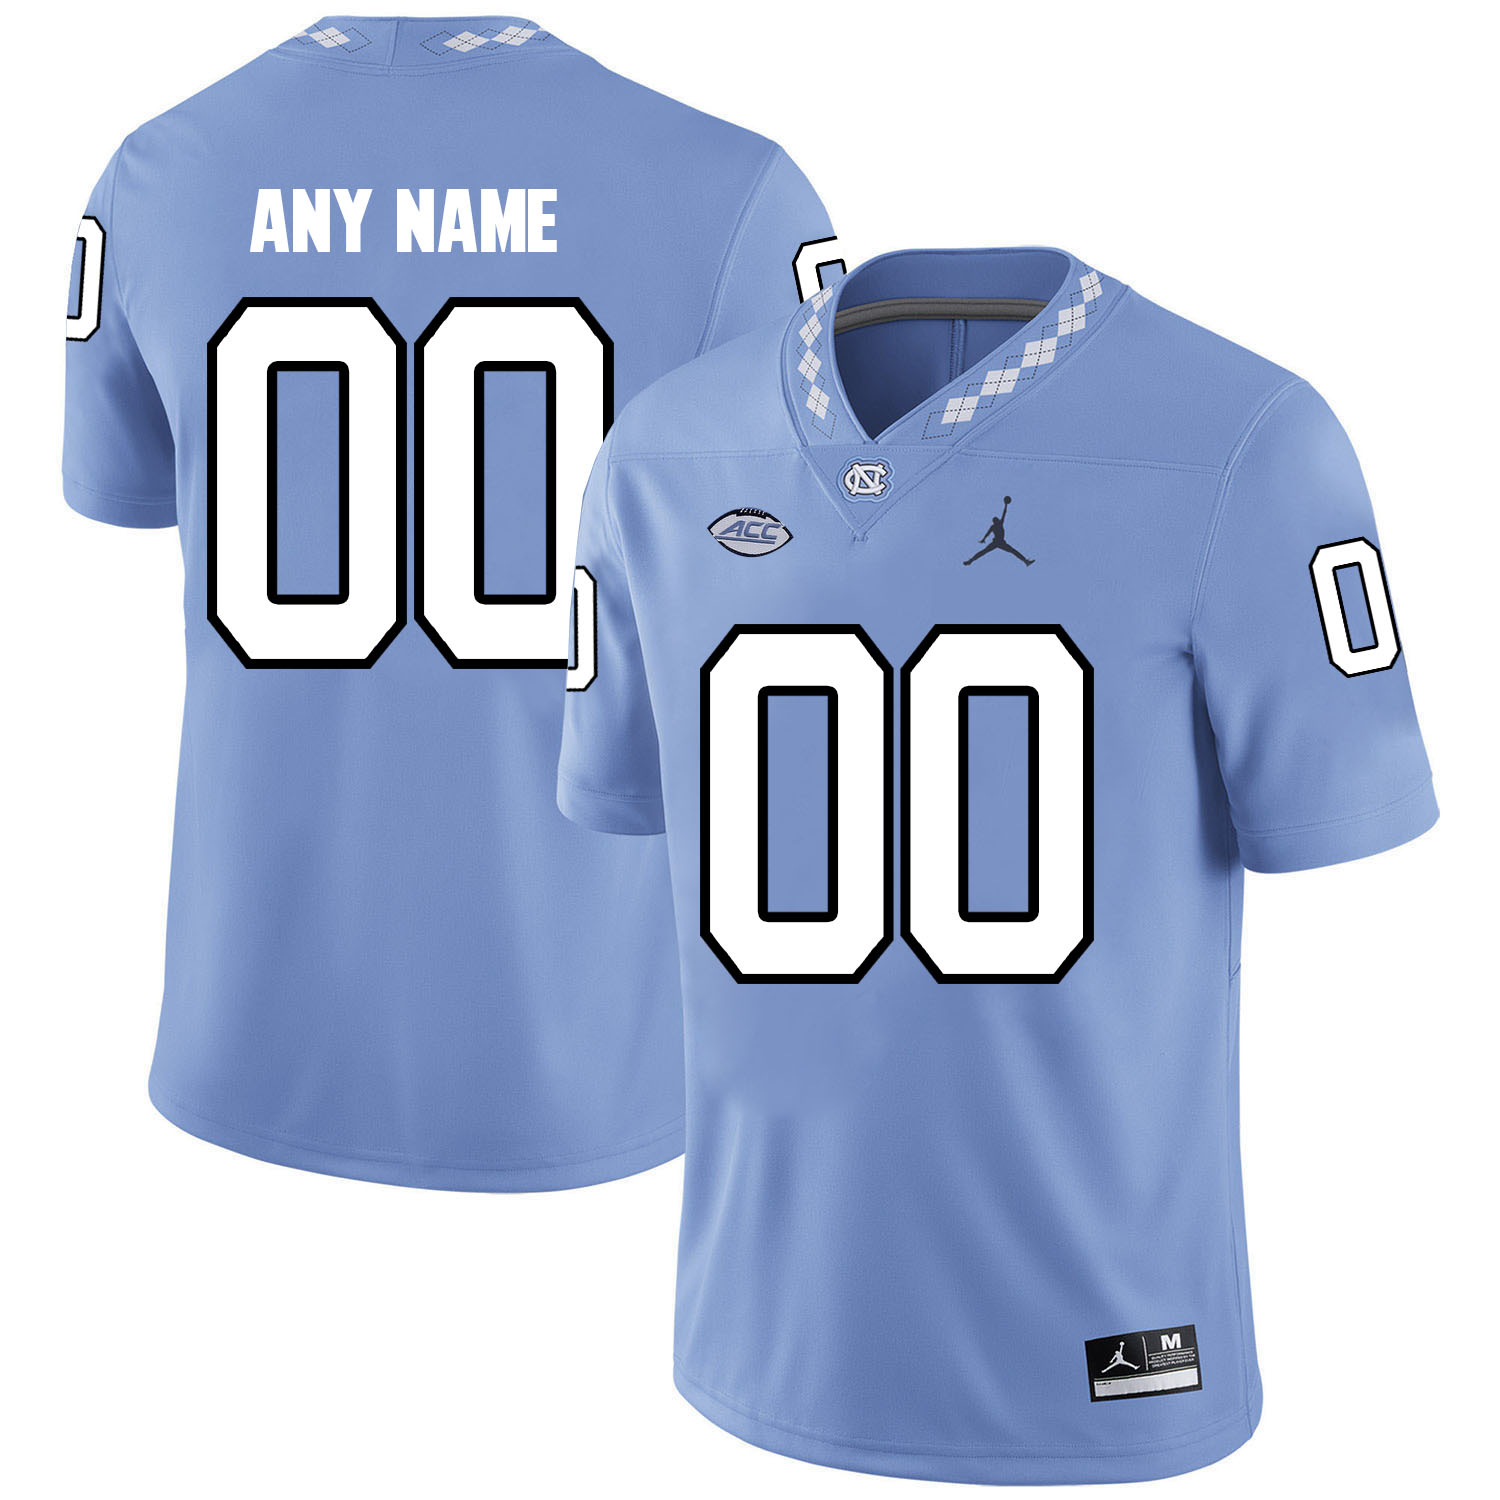 North Carolina Tar Heels Men's Customized Blue College Football Jersey